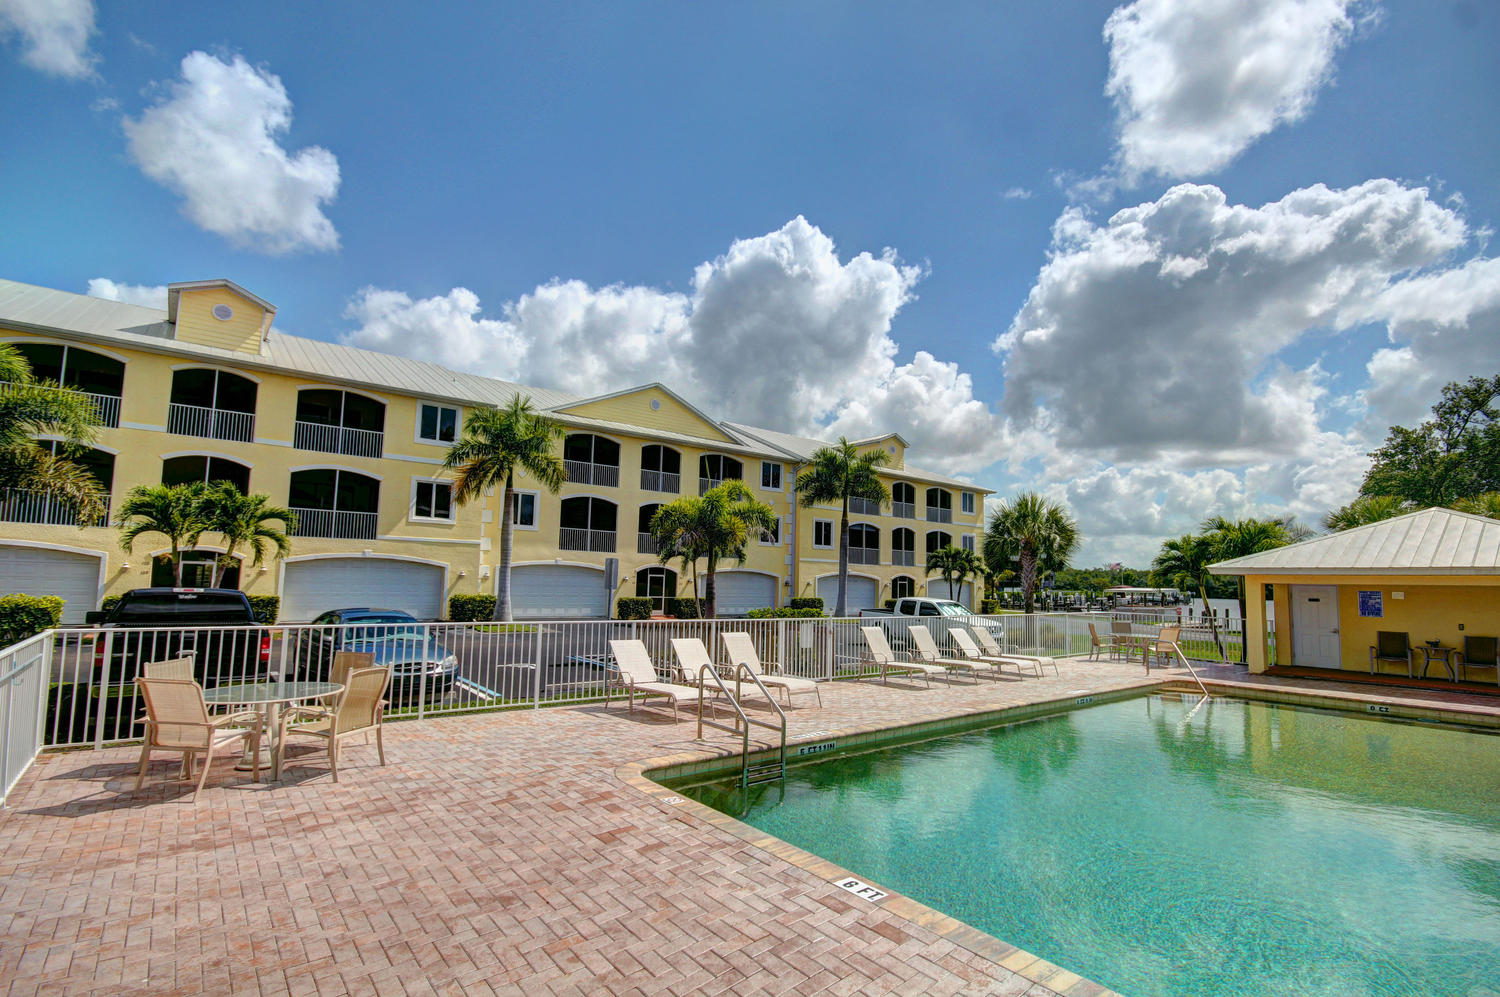 Pool at 301 S Copeland Ave, #116, Everglades City, FL 34139